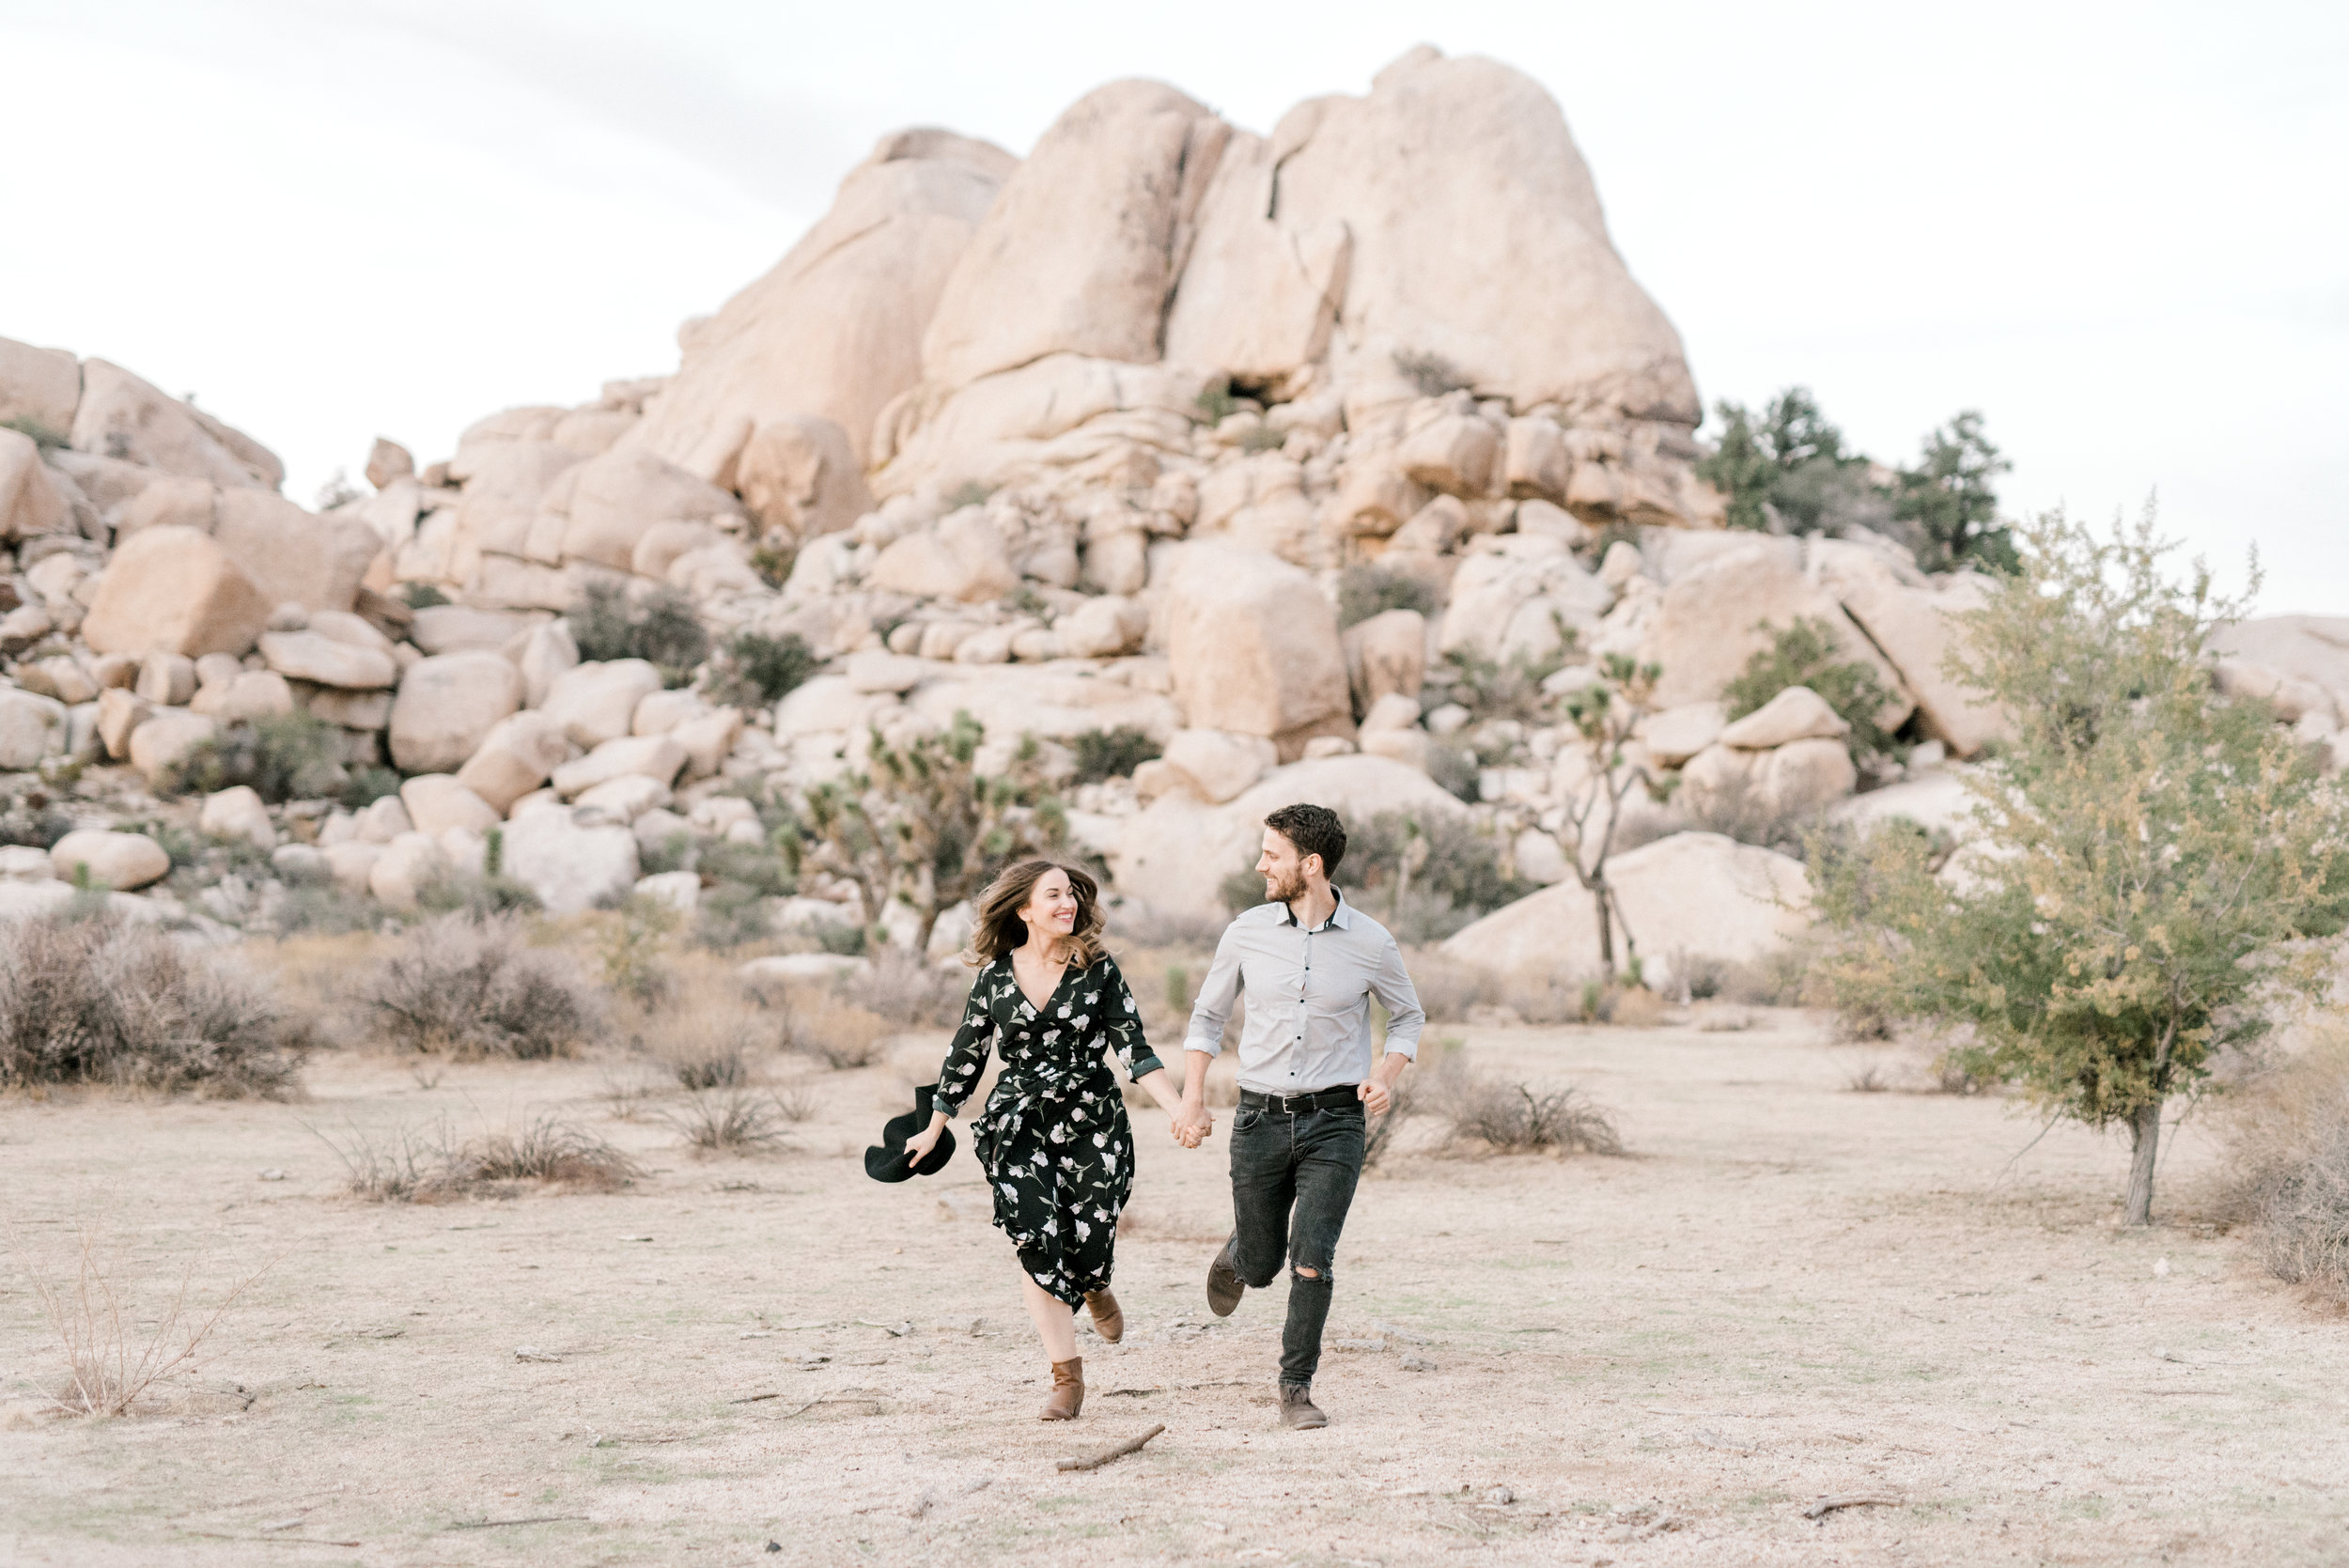 Nothing says fun like running through the desert with your love like Jenna and Sam for their free-spirited desert engagement session in Joshue Tree